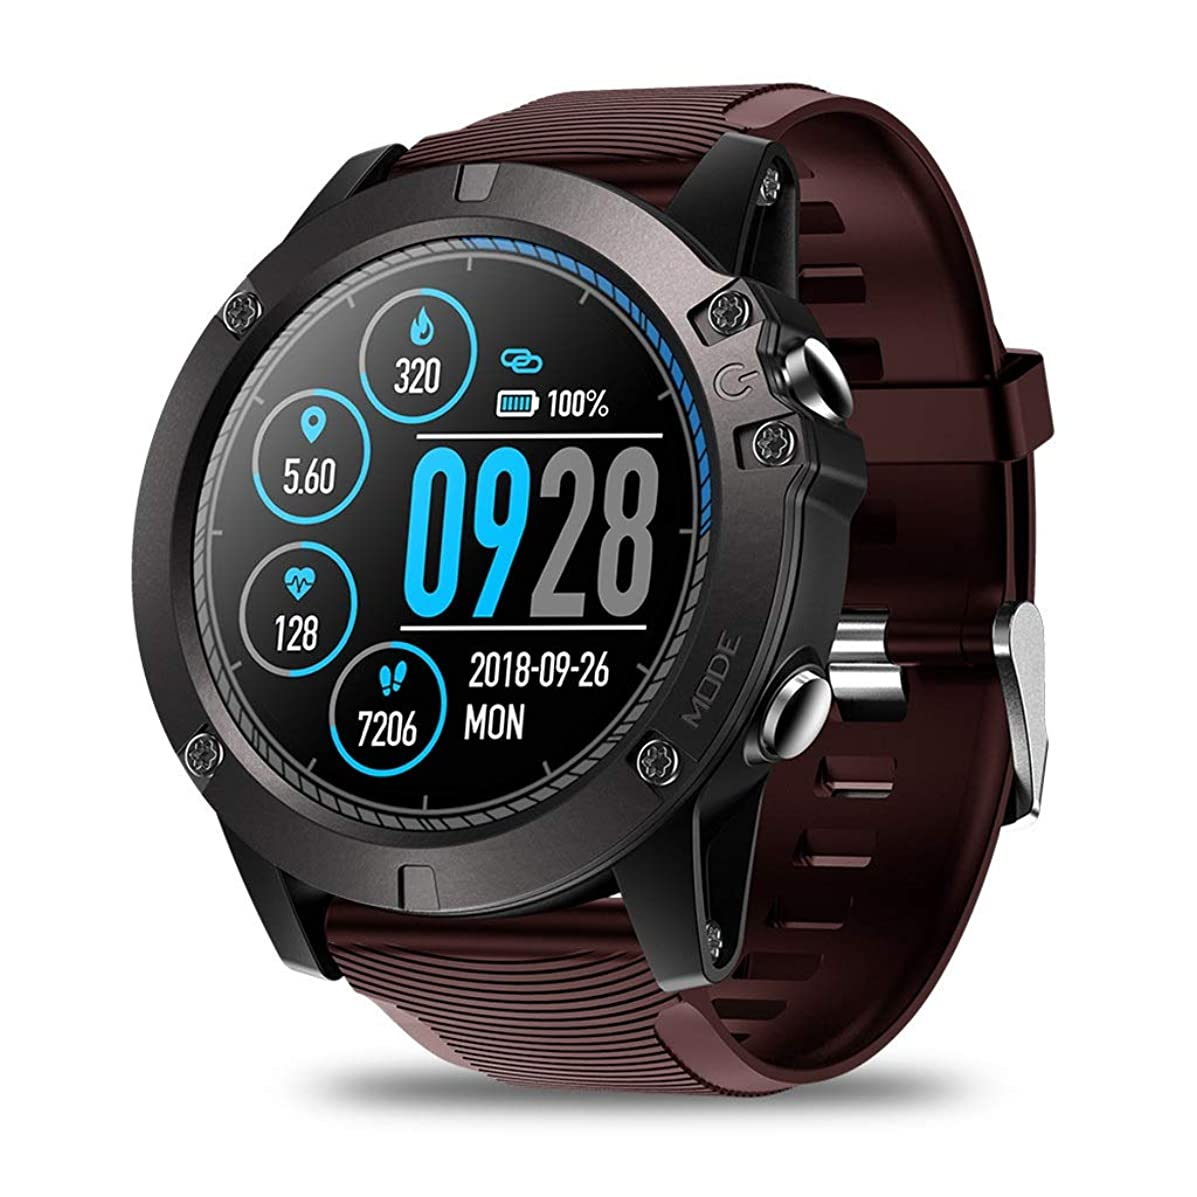 PLY IP67 Waterproof Fitness Tracker Smart Watch|Touch Screen Bluetooth | Heart Rate Detection | Long Standby | Sports Smart Watch (Color : Red)